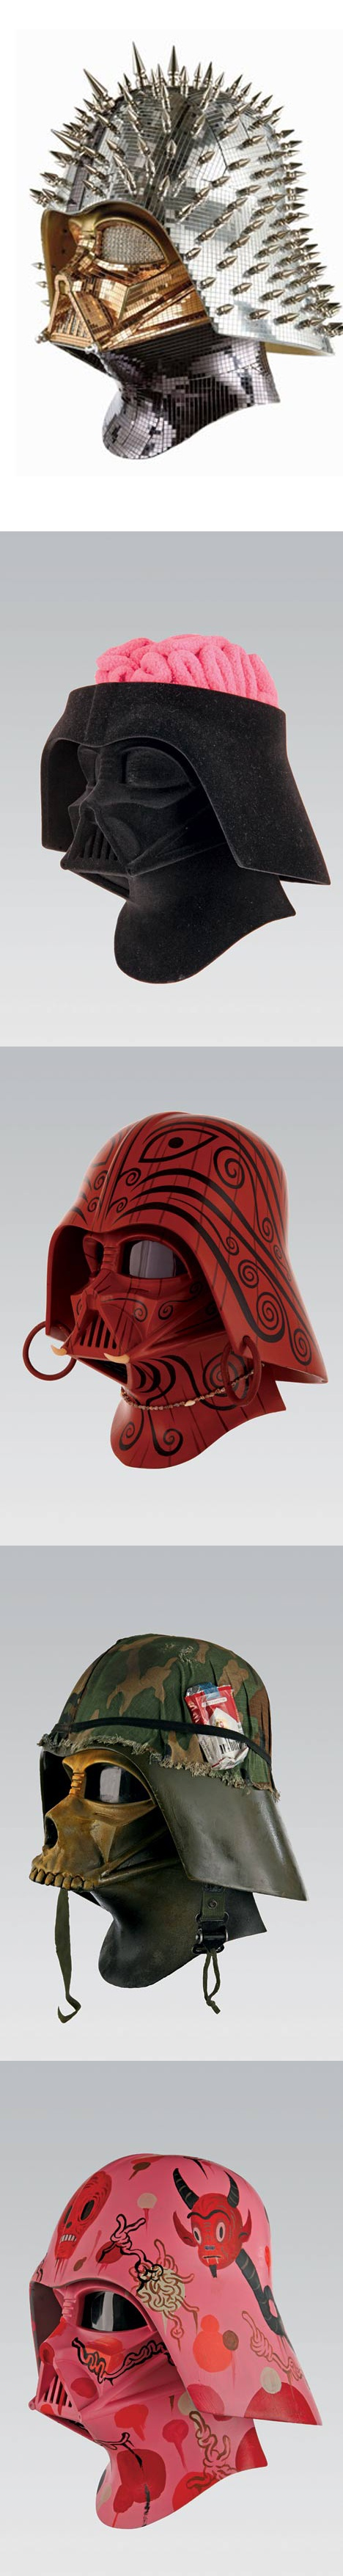 THE 100 HELMETS OF THE VADER PROJECT: PLASTICGOD